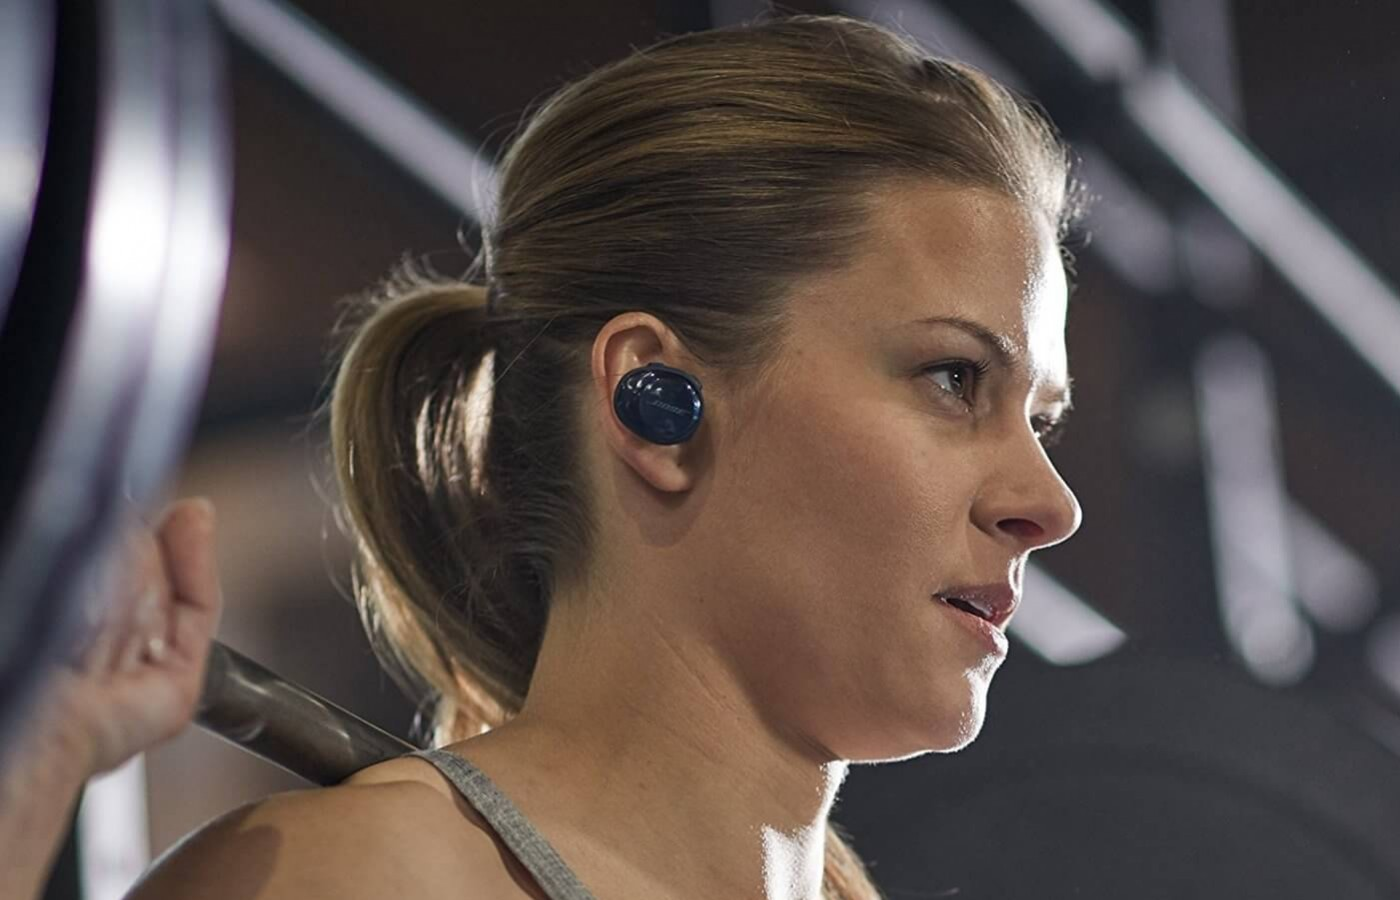 The Bose SoundSport Free headphones feature a true wireless design